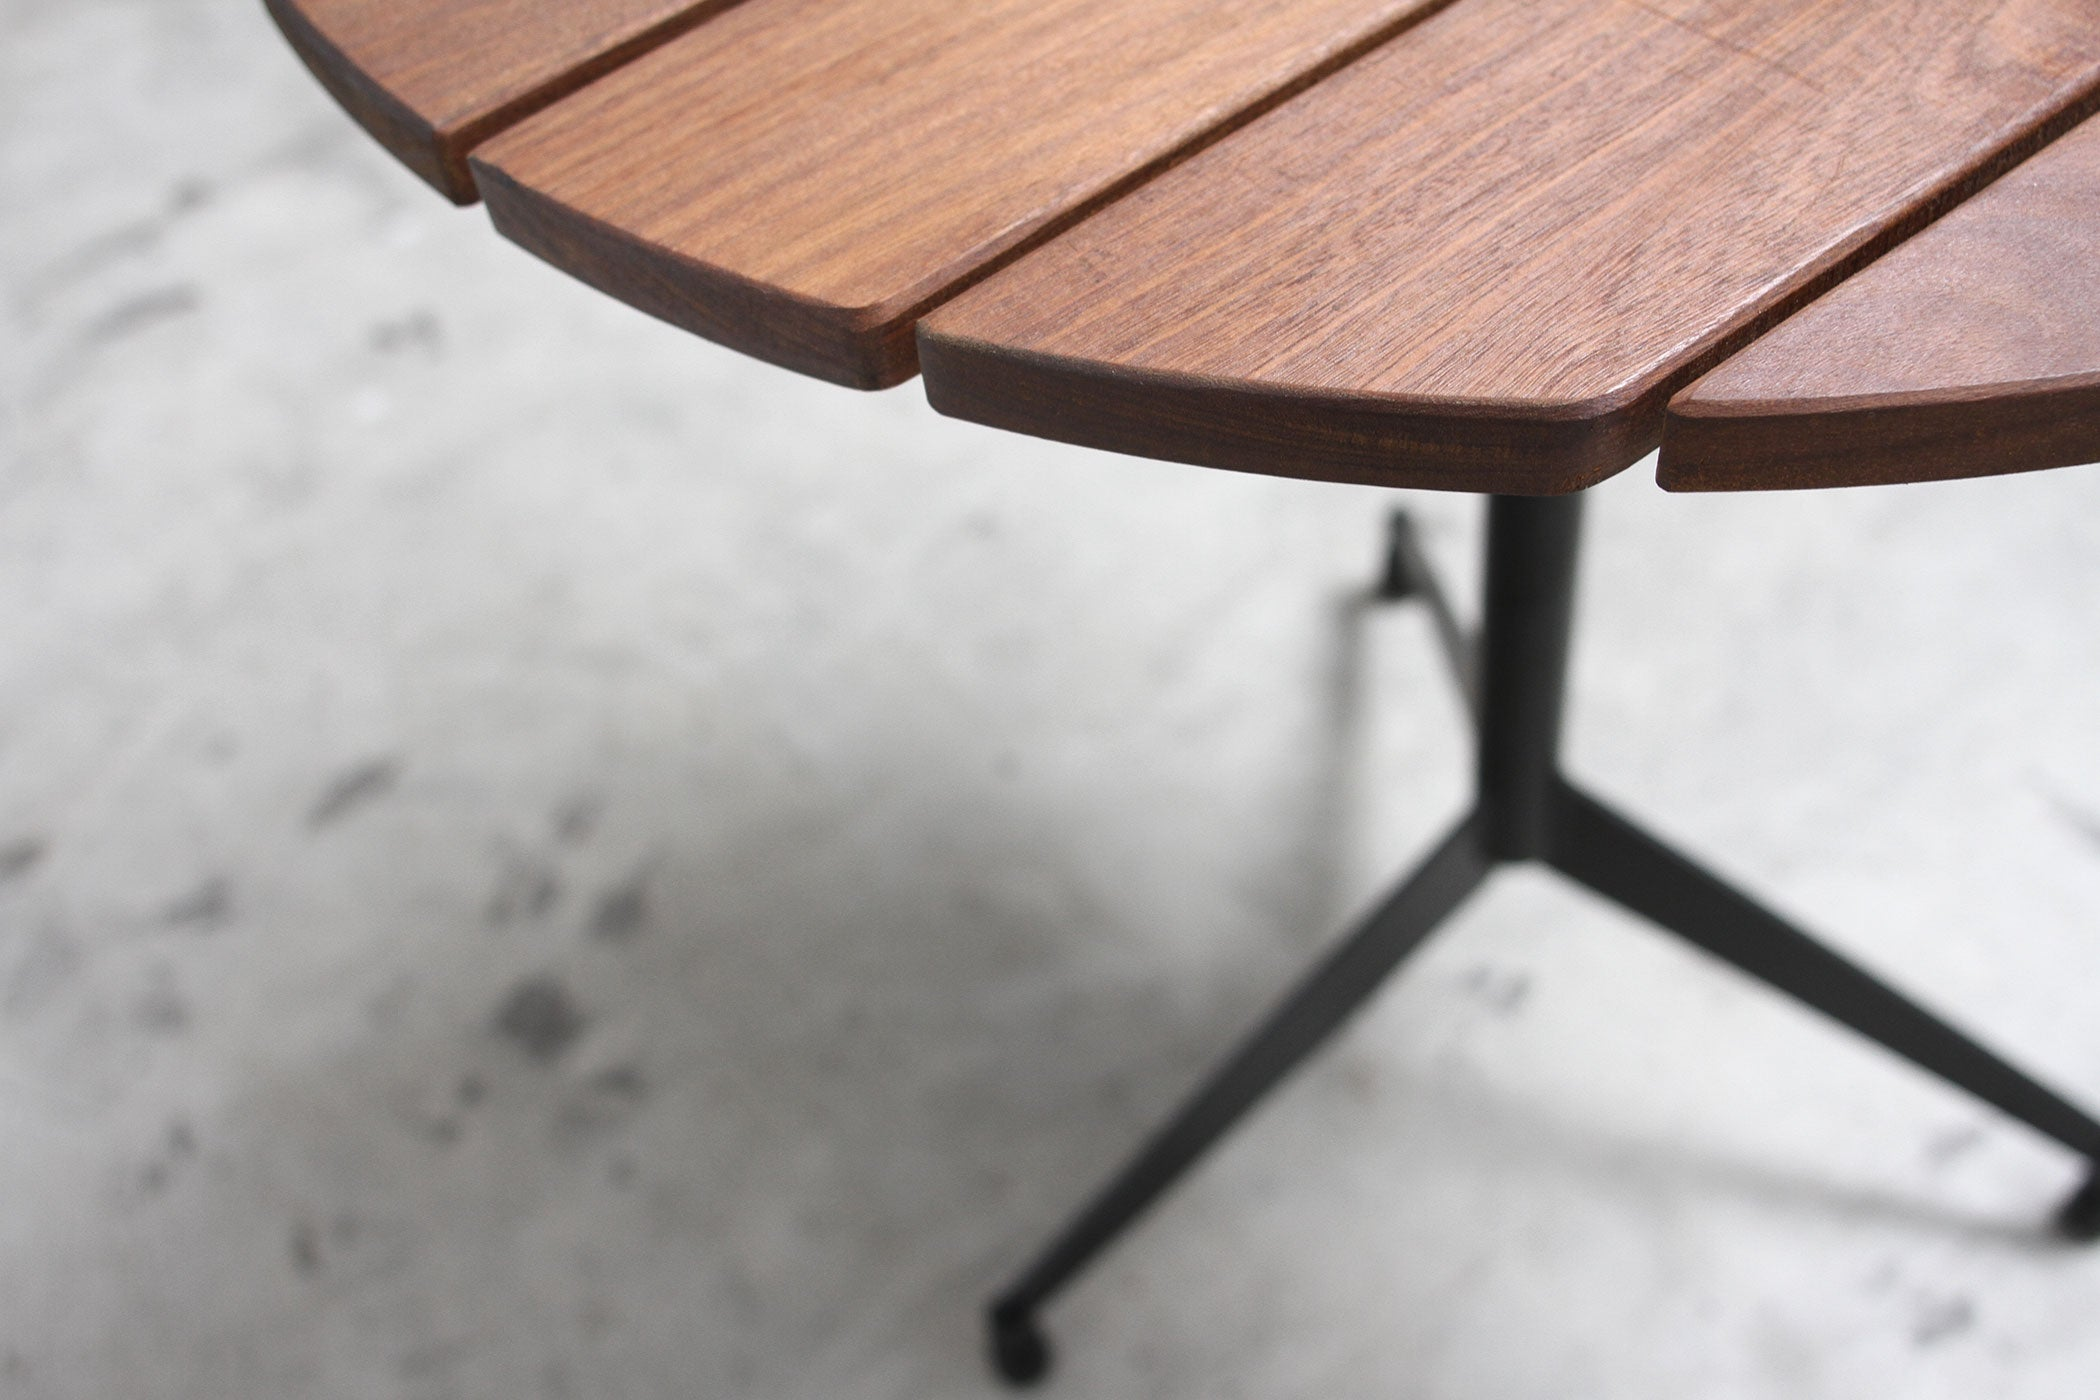 RAD Furniture's Slatted Wood Round Cafe Table - slat detail